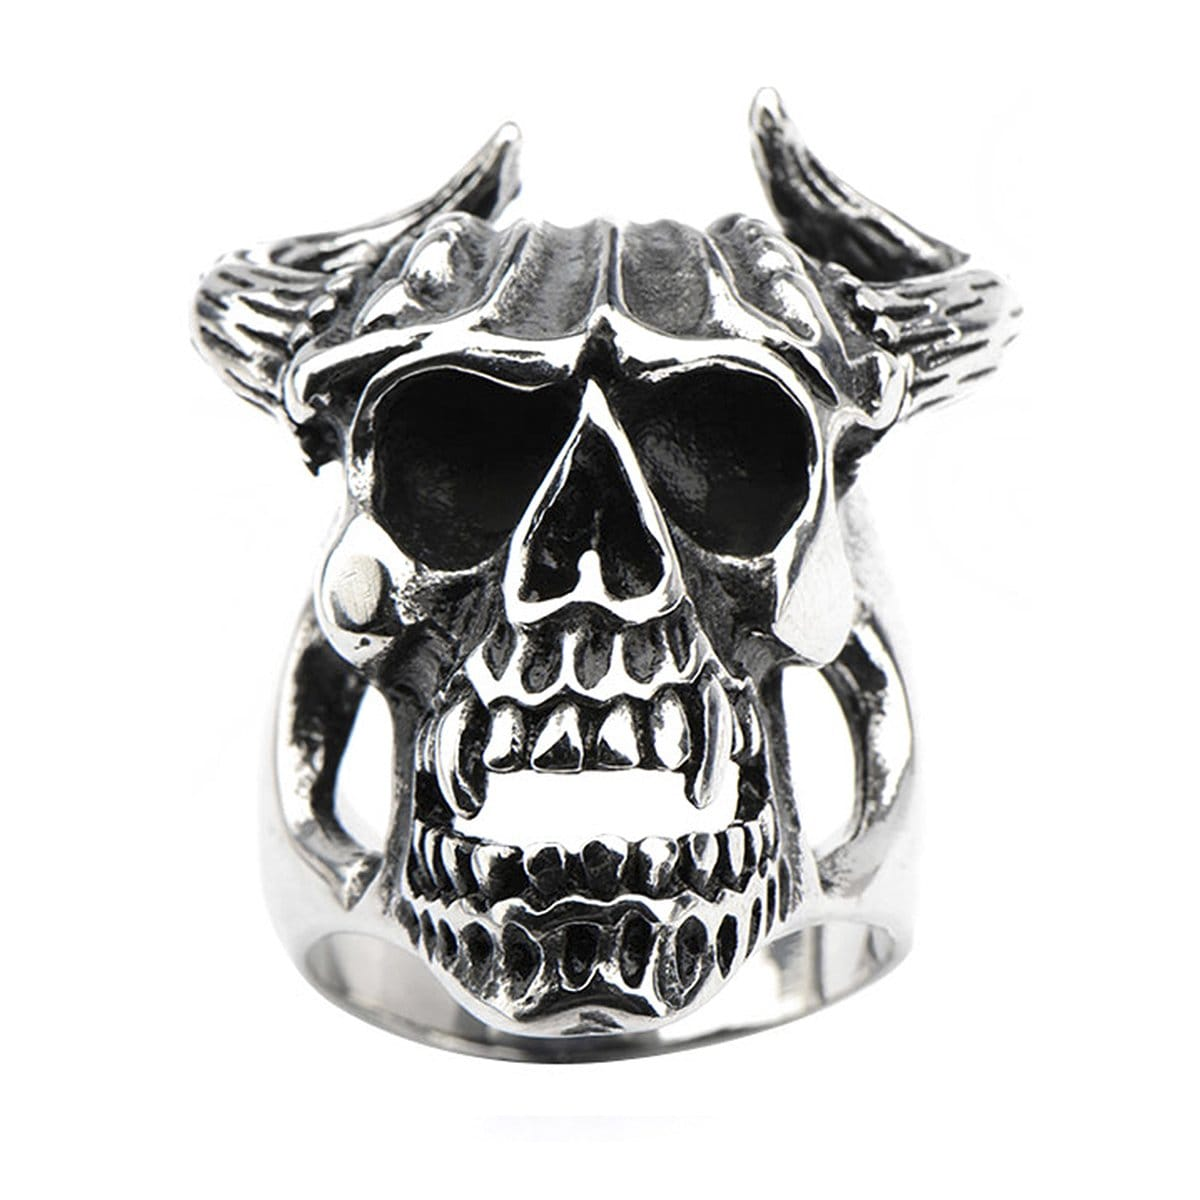 Darkened Silver Stainless Steel Oxidized Skull with Horns Ring Rings